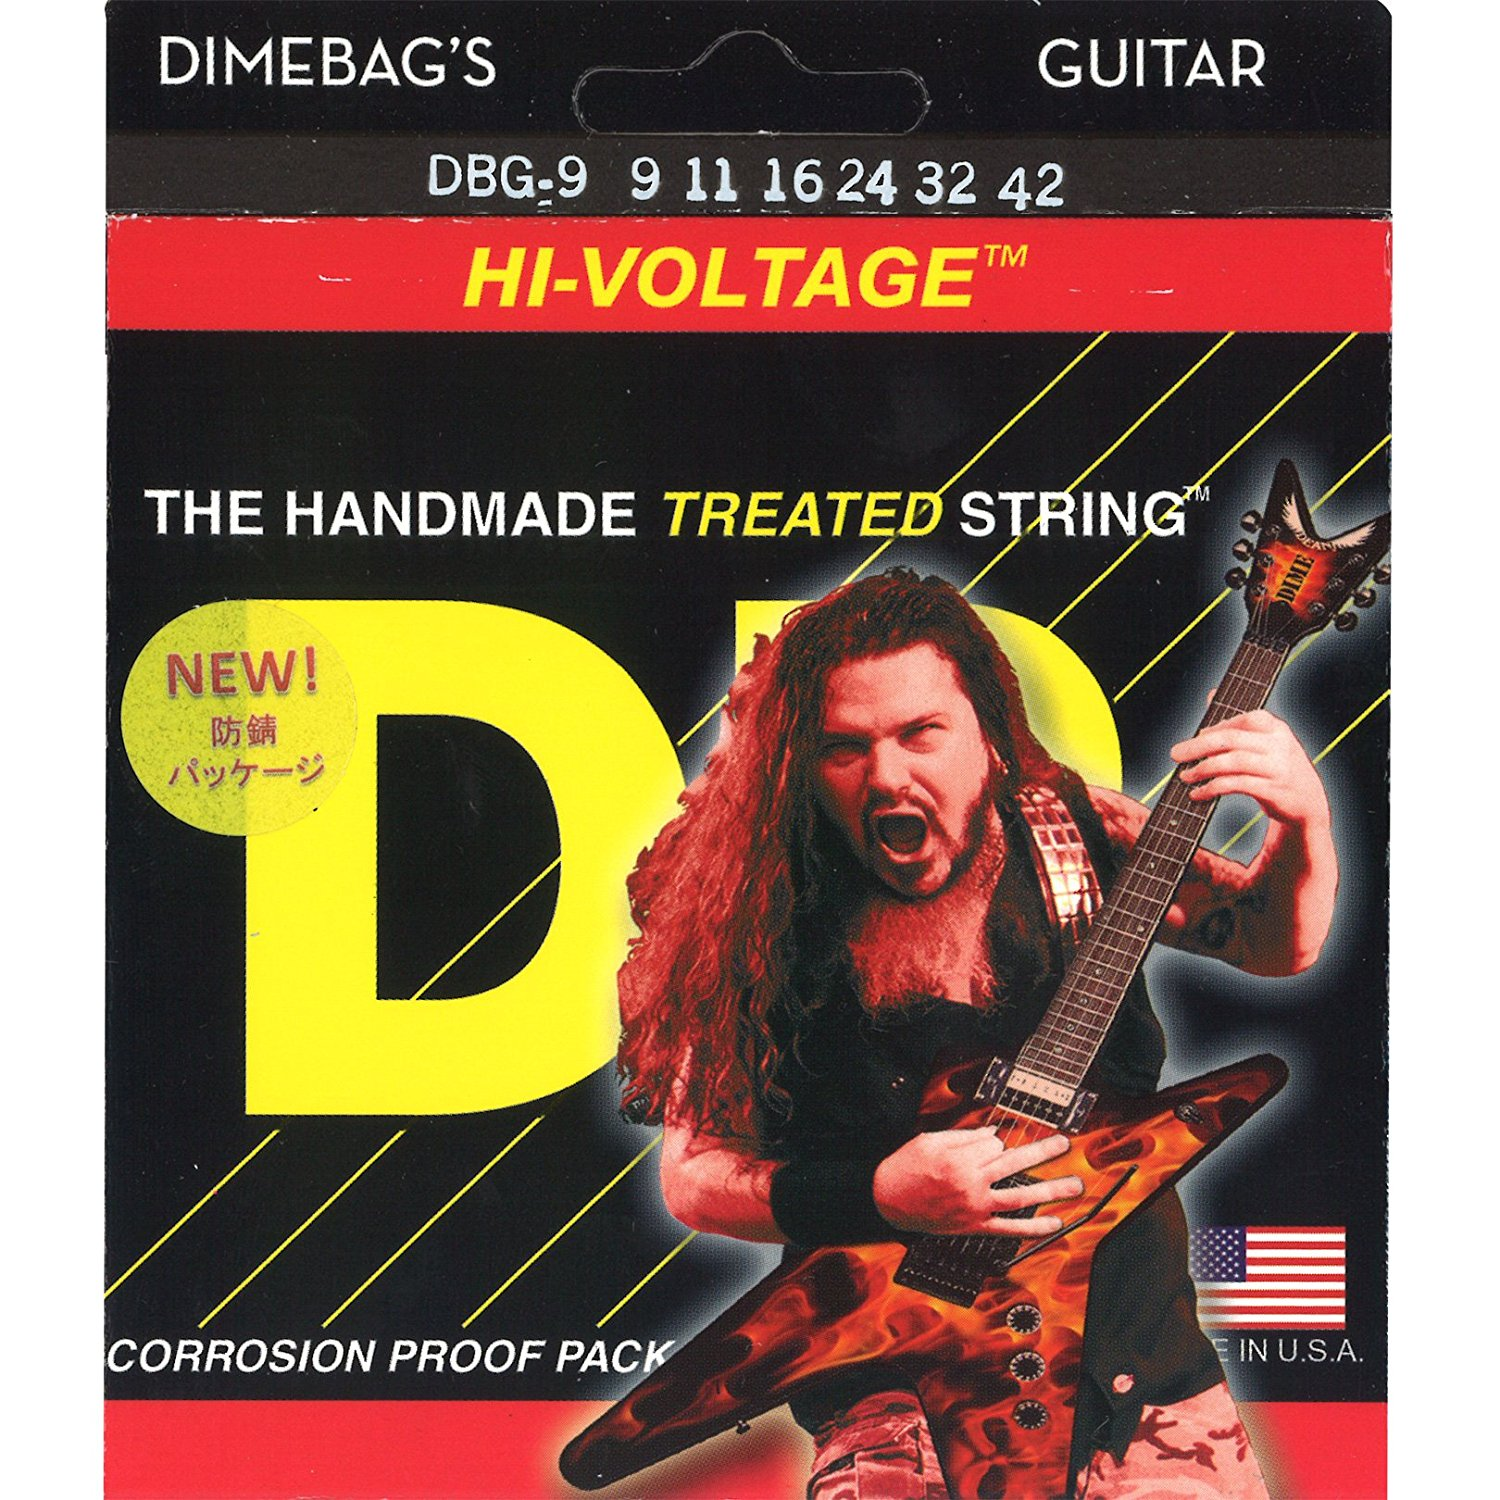 DR Strings Electric Guitar Strings, Dimebag Darrell Signature, Treated Nickel-Plated Strings, DBG-9 DBG-9/46 DBG-10